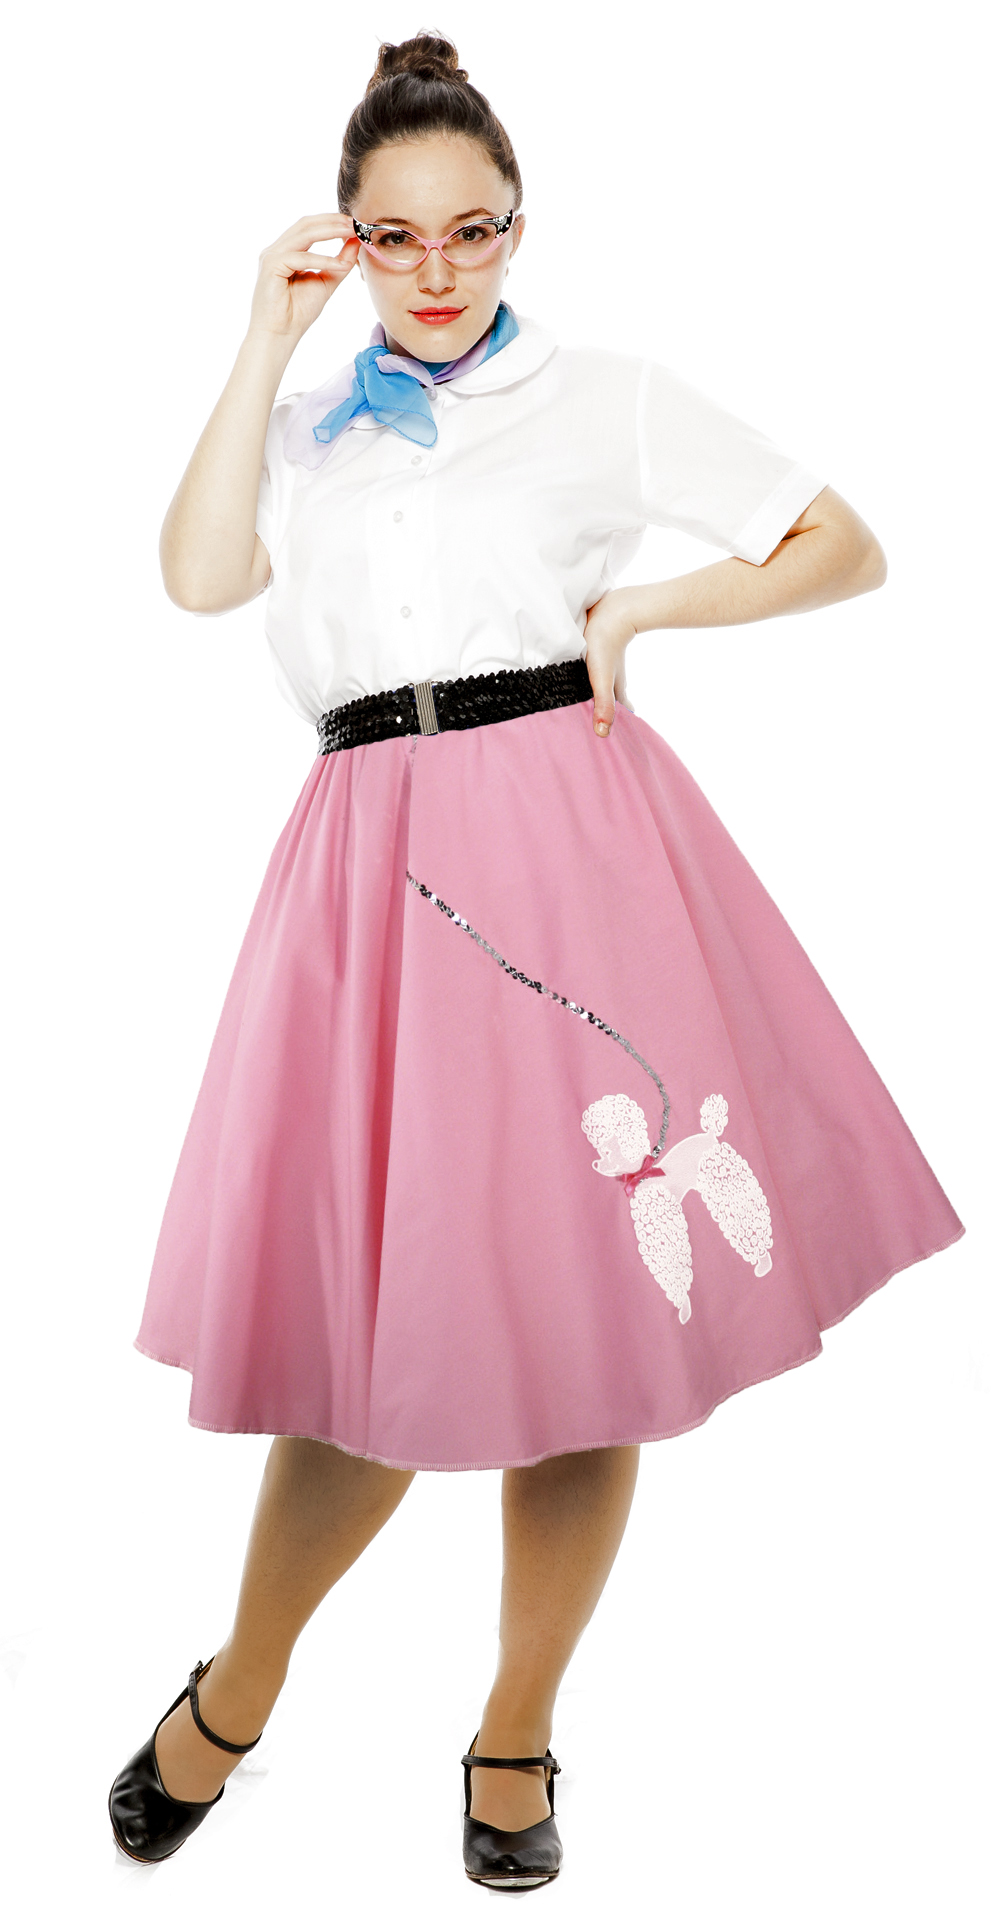 Hey Viv ! Poodle Skirts Swing - Circle Skirts with Elastic Waists for an easy fit